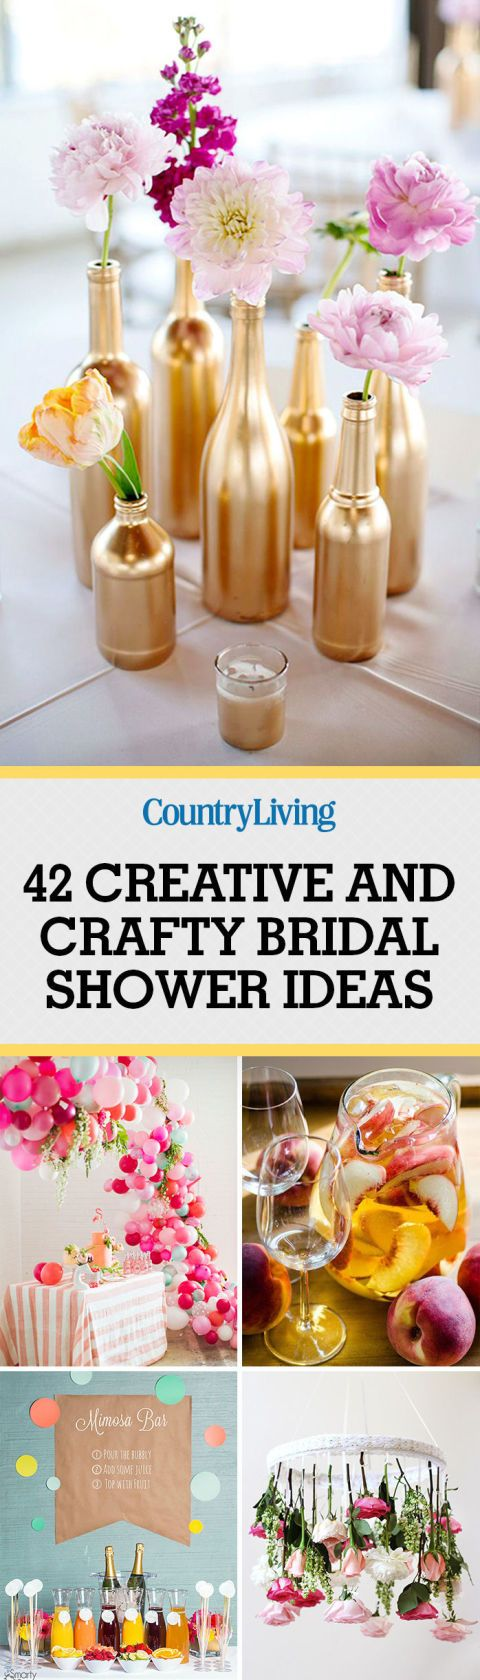 Bridal Shower Decorations Ideas Pinterest : 25+ Best Ideas about Bridal Brunch Shower on Pinterest Bridal shower ...